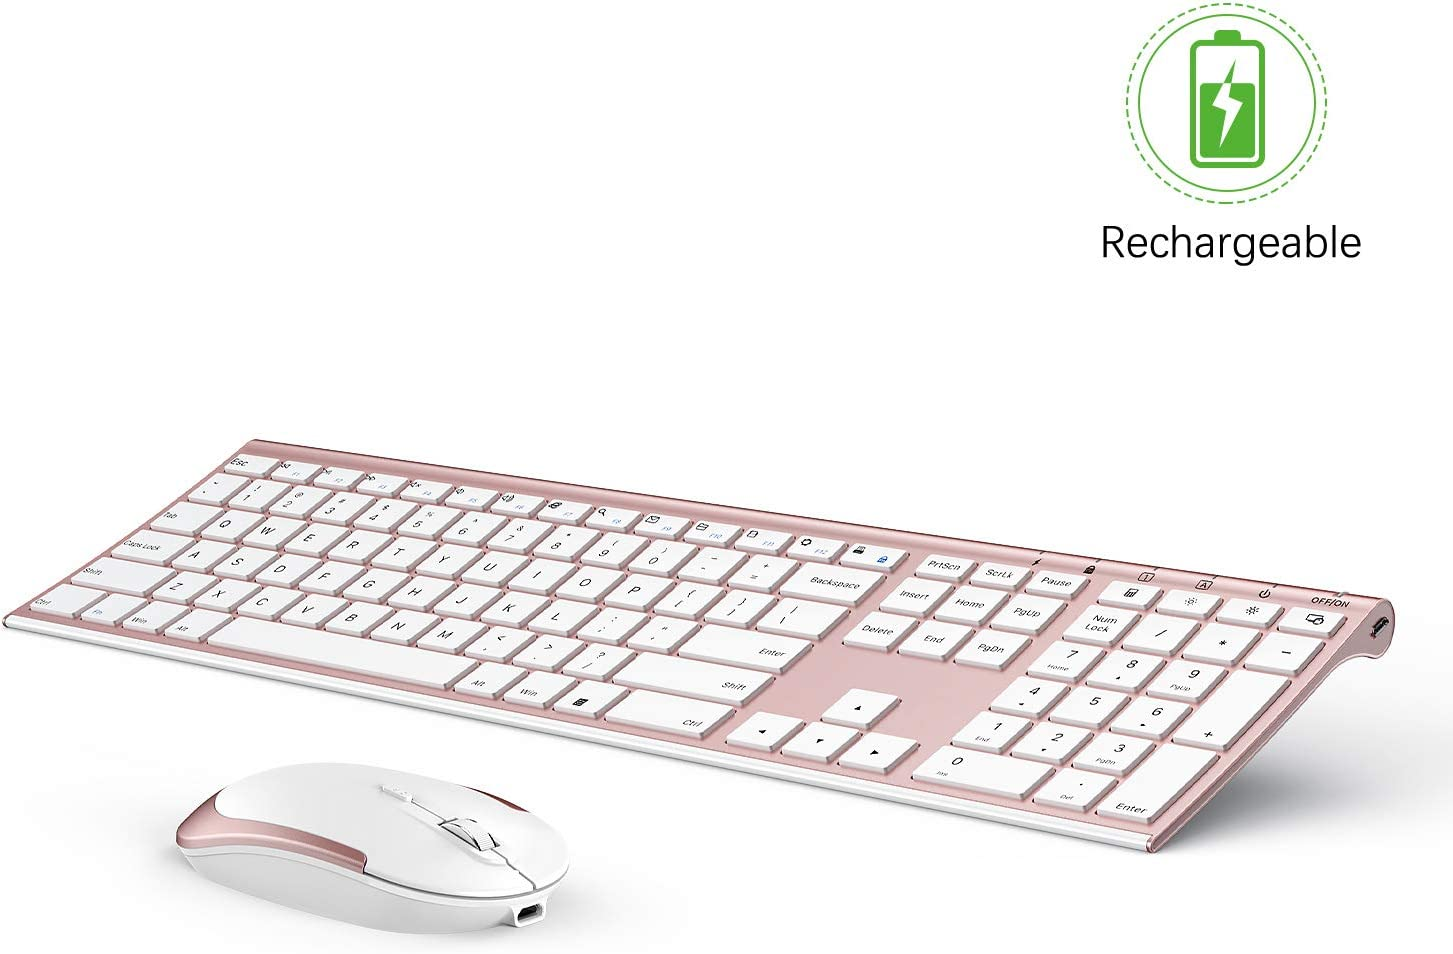 Wireless Keyboard and Mouse, Vssoplor 2.4GHz Rechargeable Compact Quiet Full-Size Keyboard and Mouse Combo with Nano USB Receiver for Windows, Laptop, PC, Notebook-Rose Gold